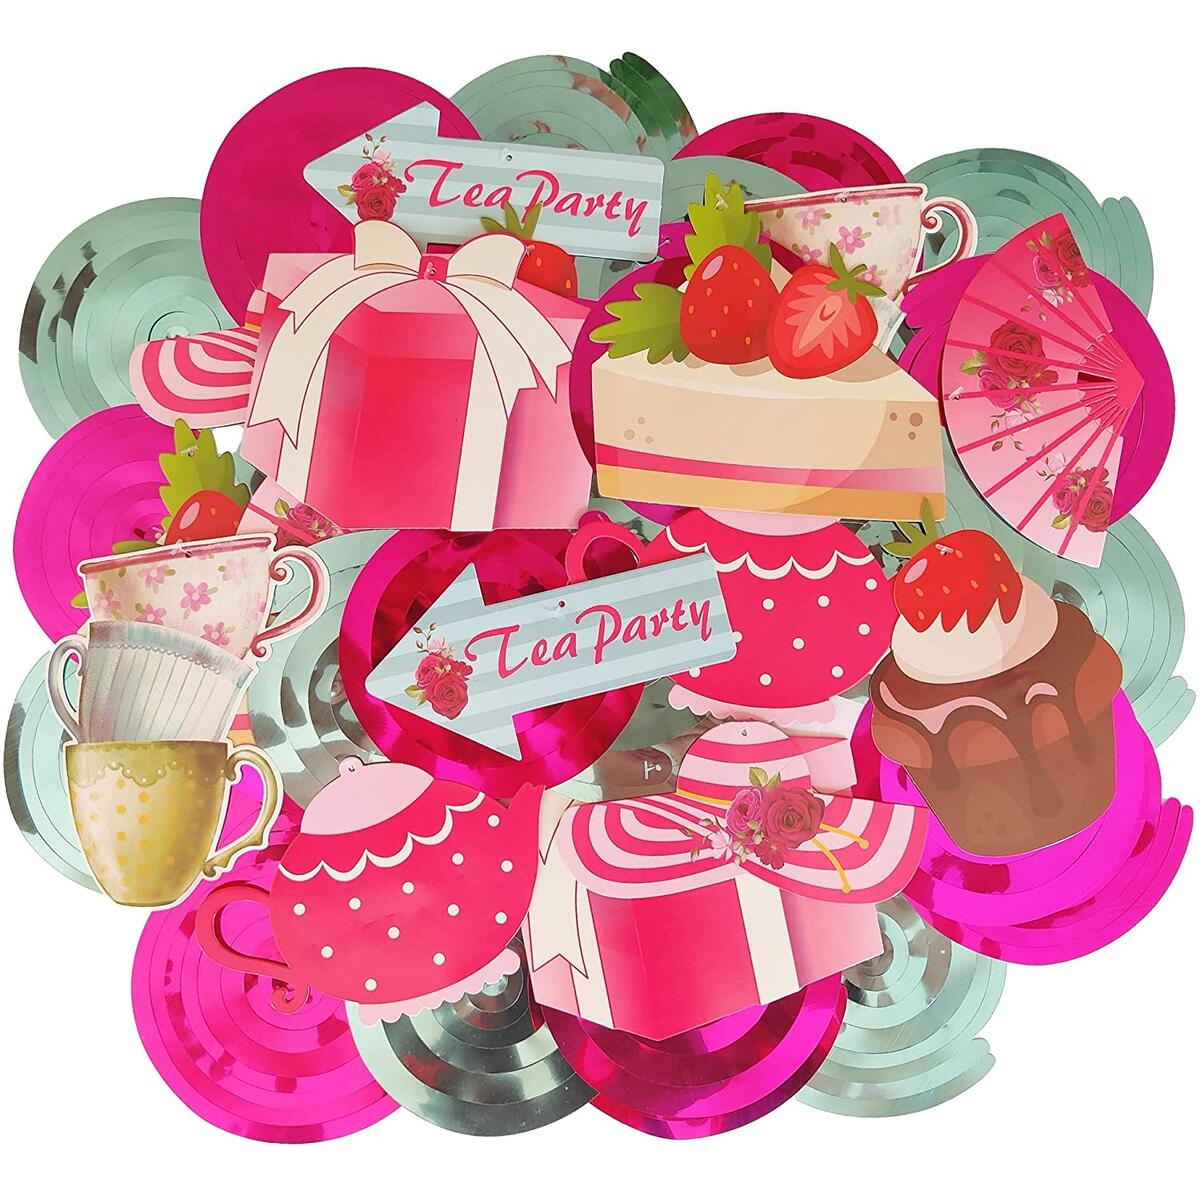 30Ct Tea Party Swirl Decorations, Alice in Wonderland Party Supplies, Tea Party Hanging Banners for Birthday Baby Shower Floral English Theme Vintage Décor, Teapots Teacup Cupcake